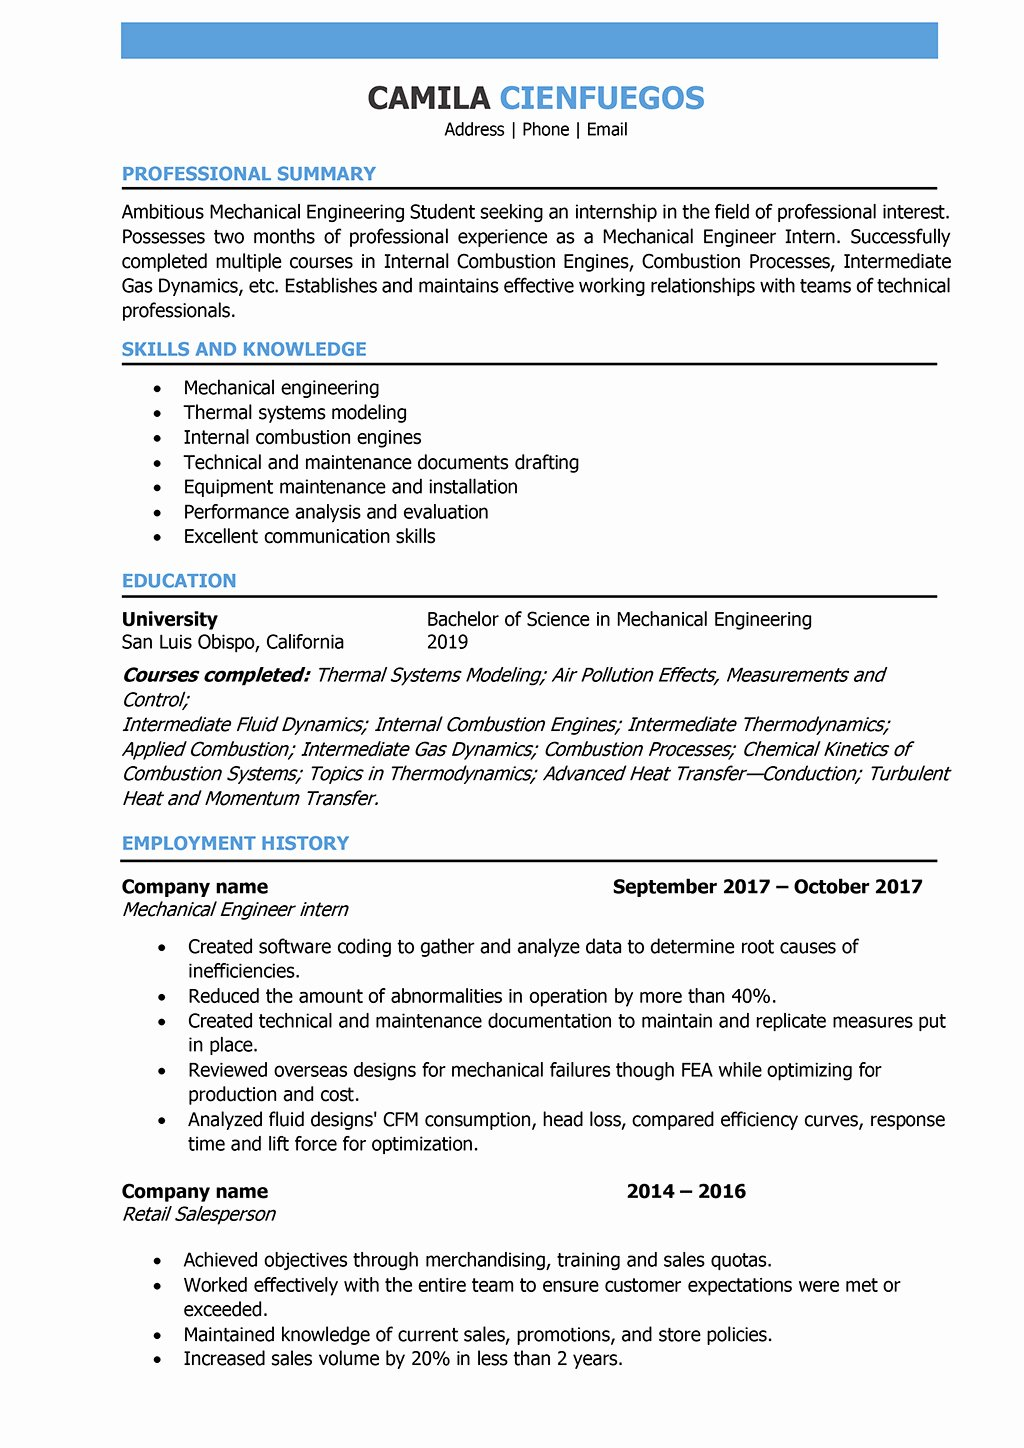 Entry Level Mechanical Engineering Resume Beautiful Mechanical Engineer Resume Samples and Writing Guide [10